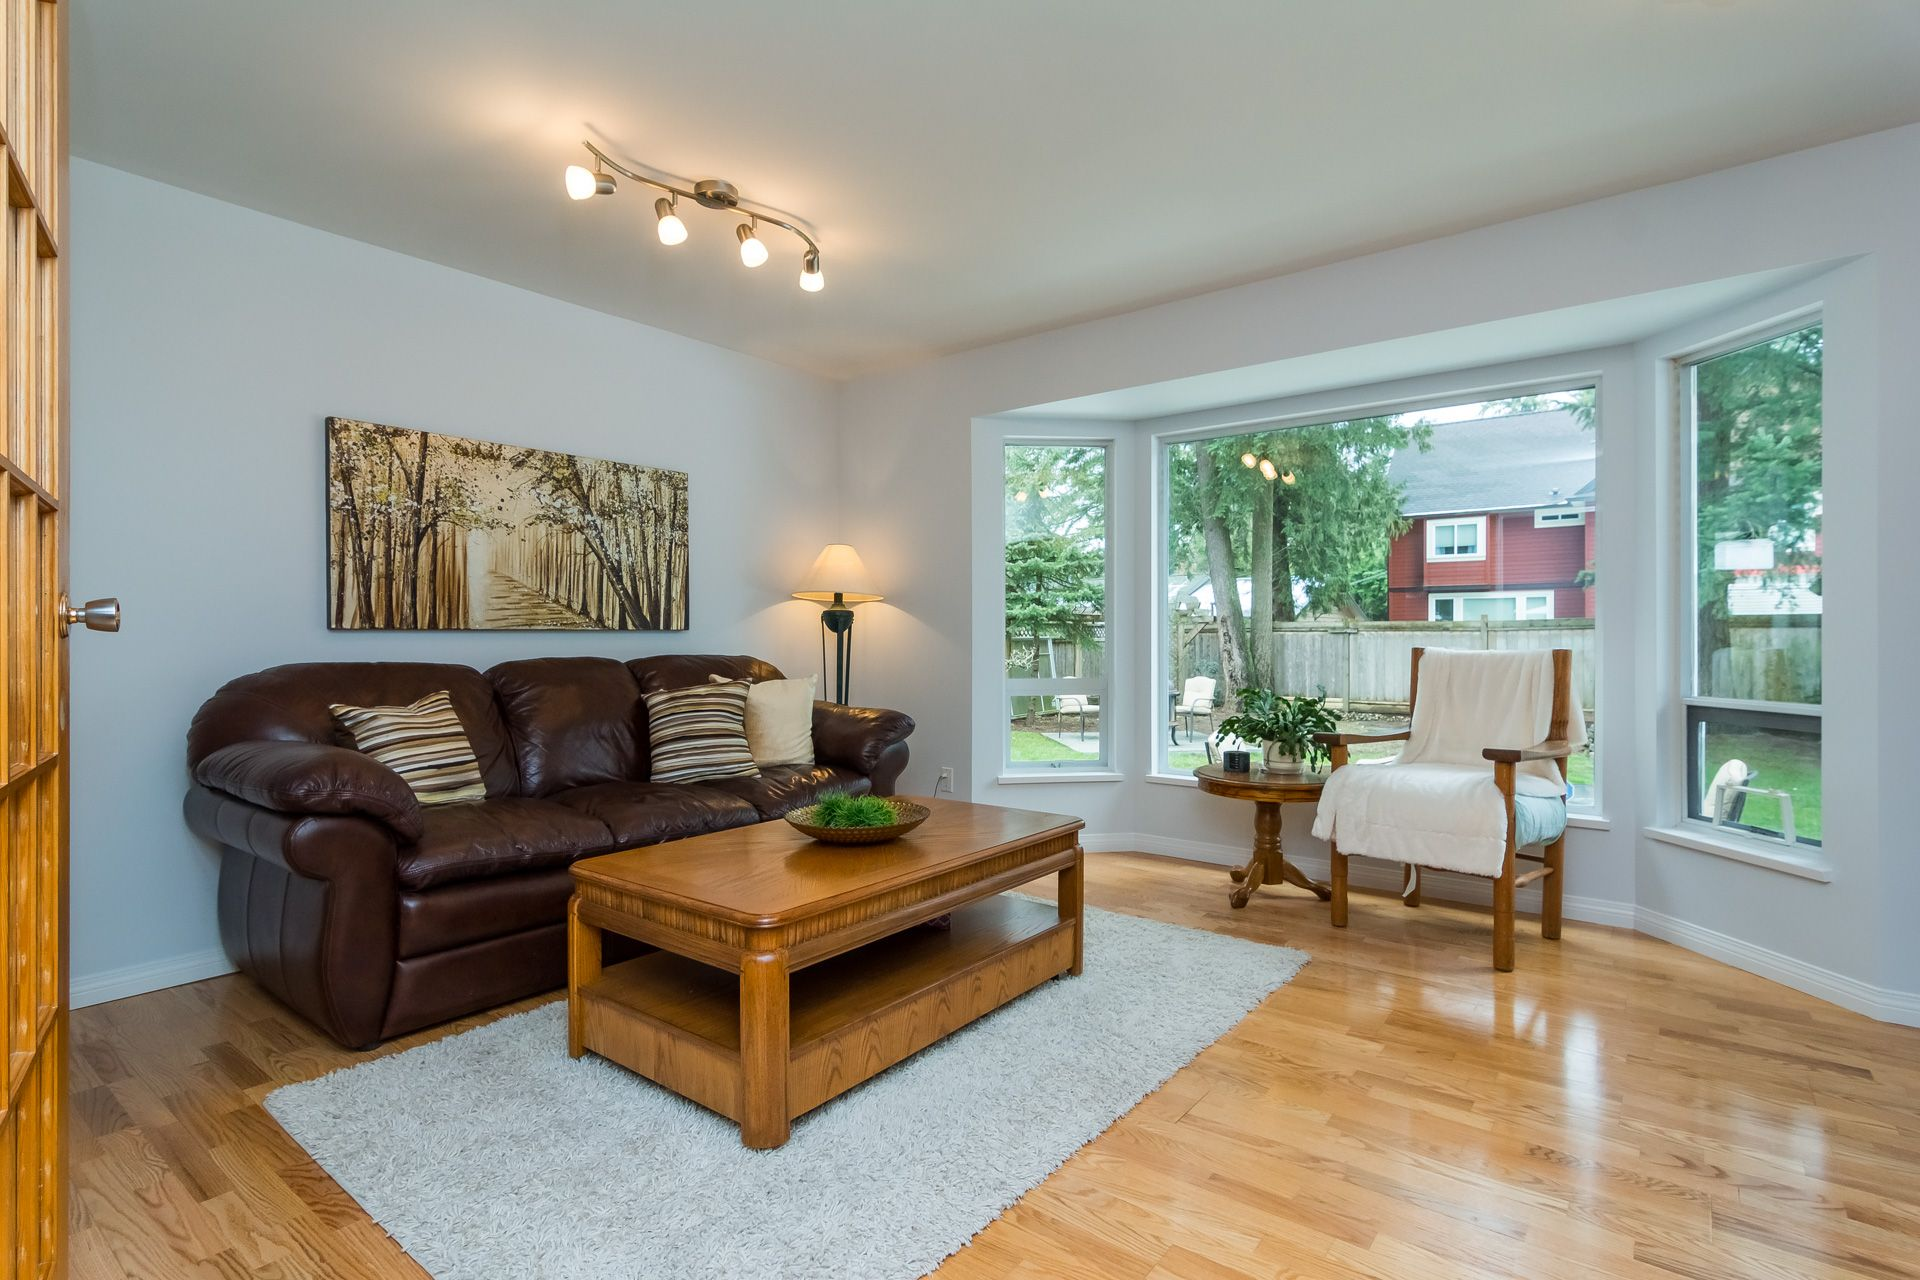 """Photo 9: Photos: 19941 37 Avenue in Langley: Brookswood Langley House for sale in """"Brookswood"""" : MLS®# R2240474"""